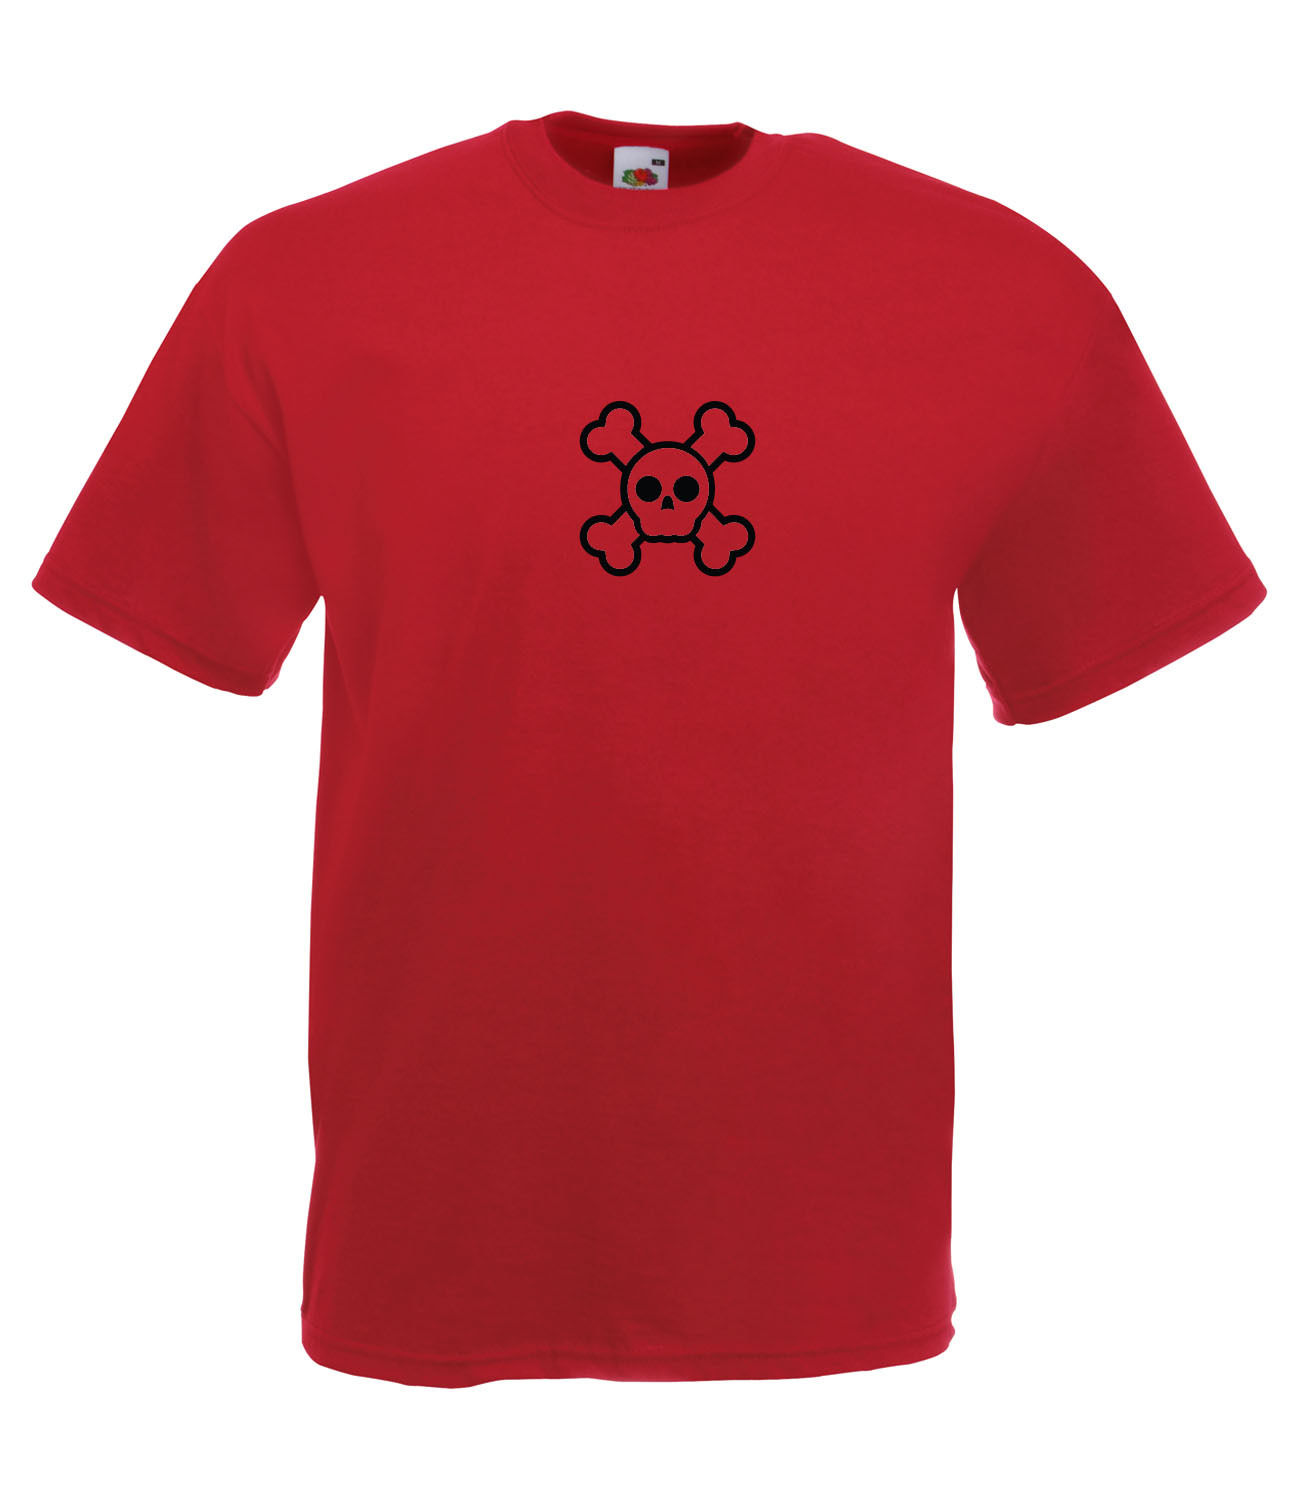 Jolly Roger Graphic High Quality 100 Cotton Short Sleeve